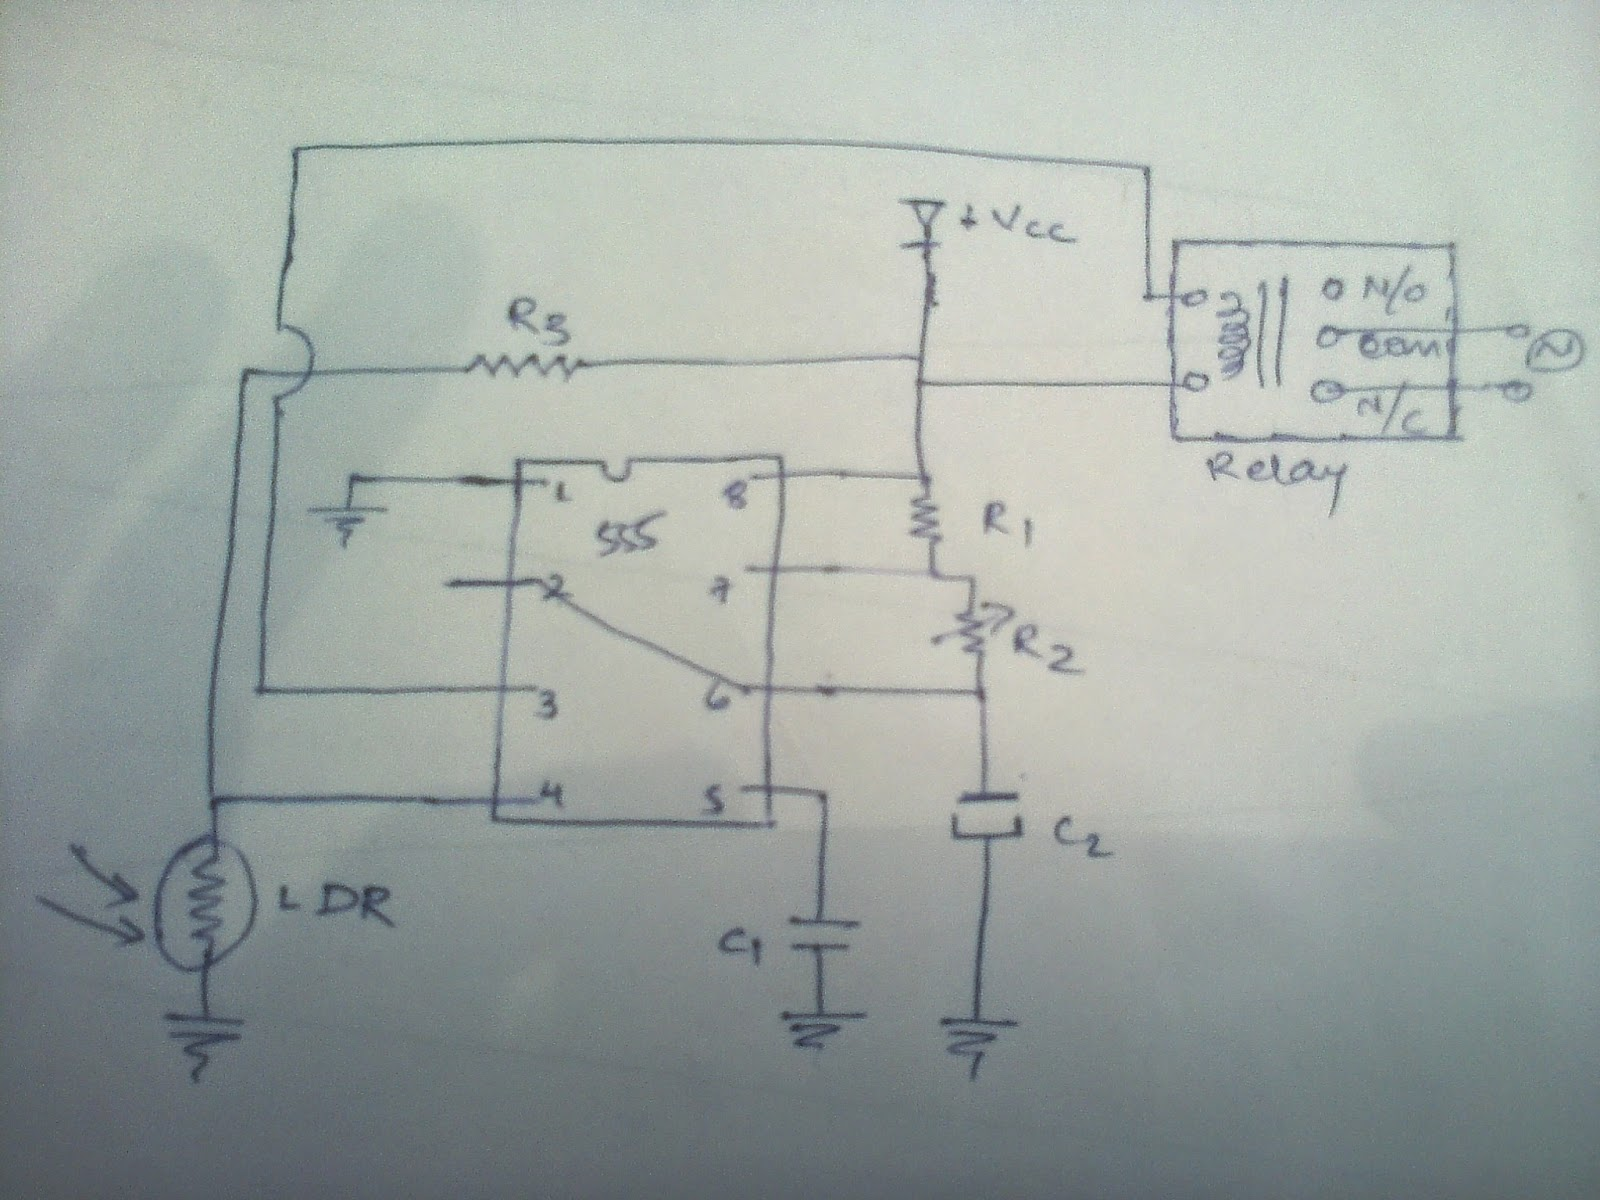 Ldr Circuit Diagram With Pnp Transistor Dark Detector Circuits Figure 1 Darknessactivated Buzzer